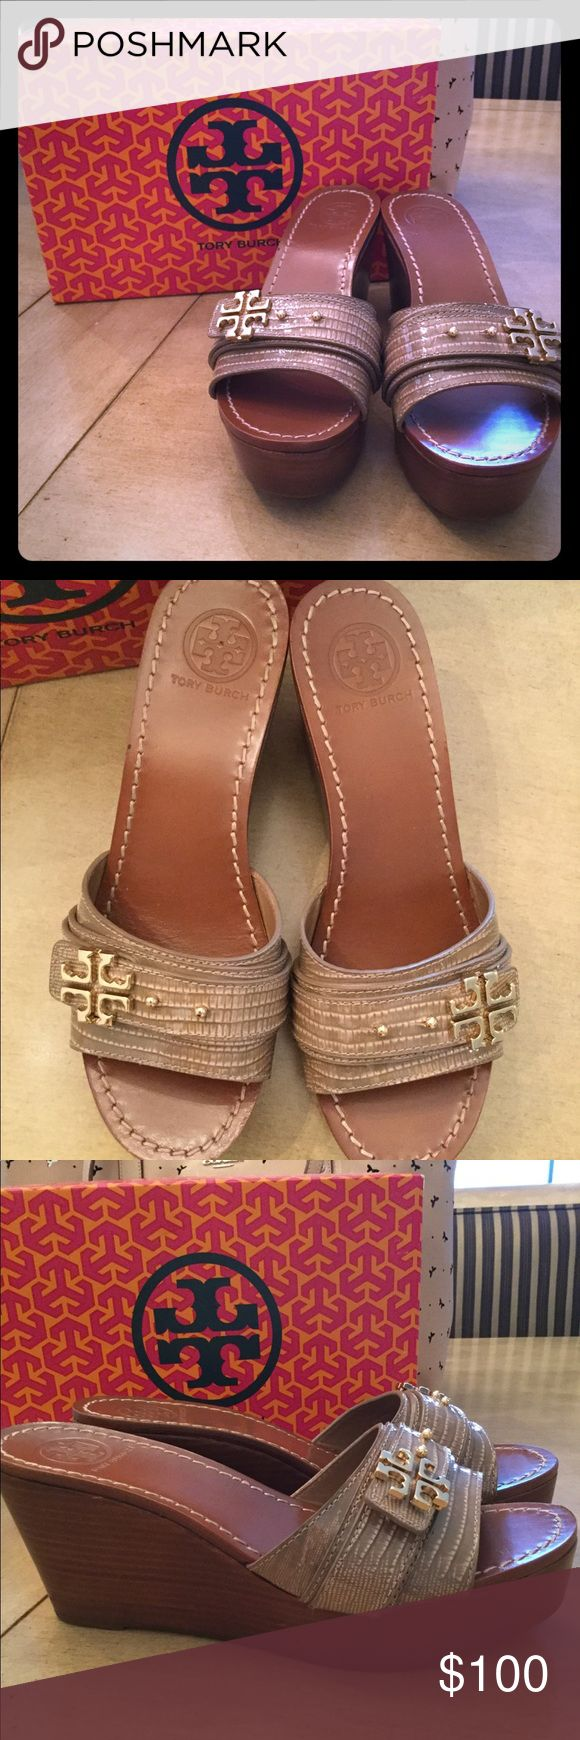 Tory Burch Wedges BRAND NEW